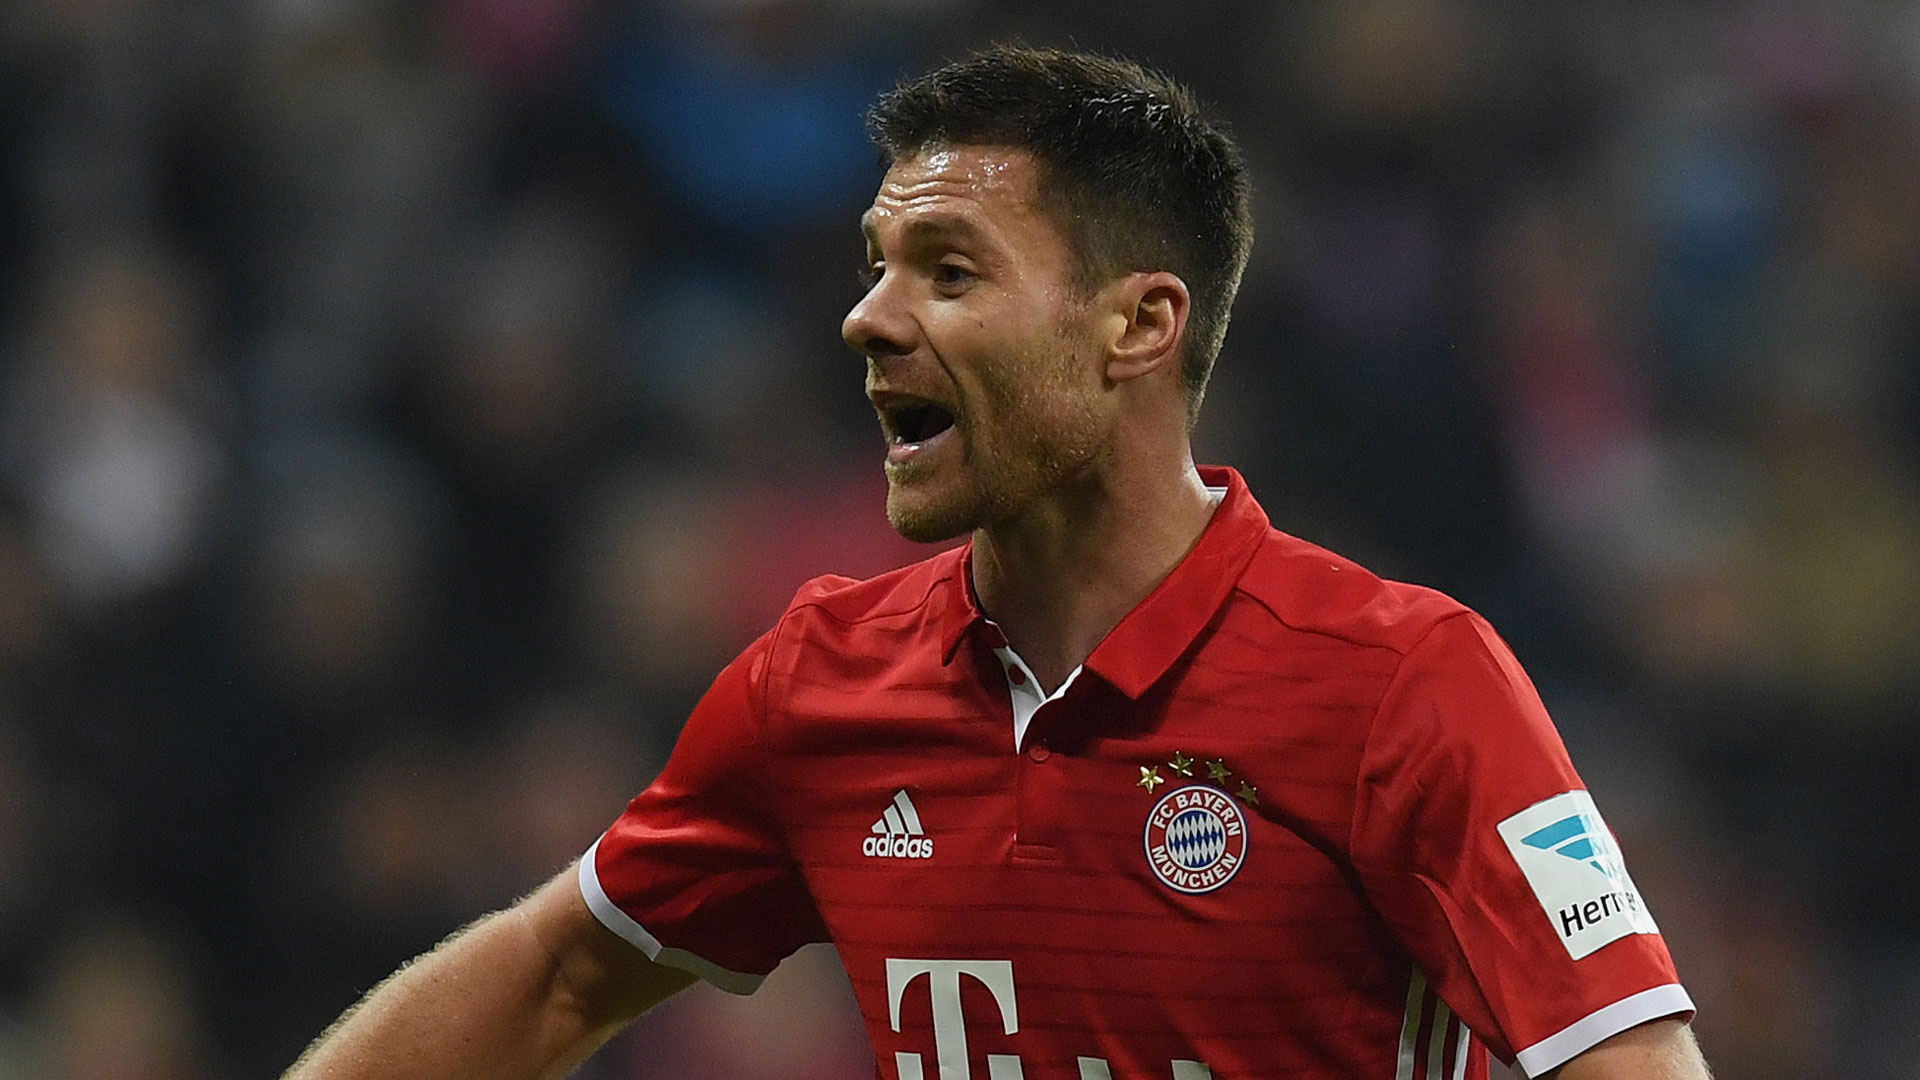 Xabi Alonso announces shock retirement in cryptic farewell message